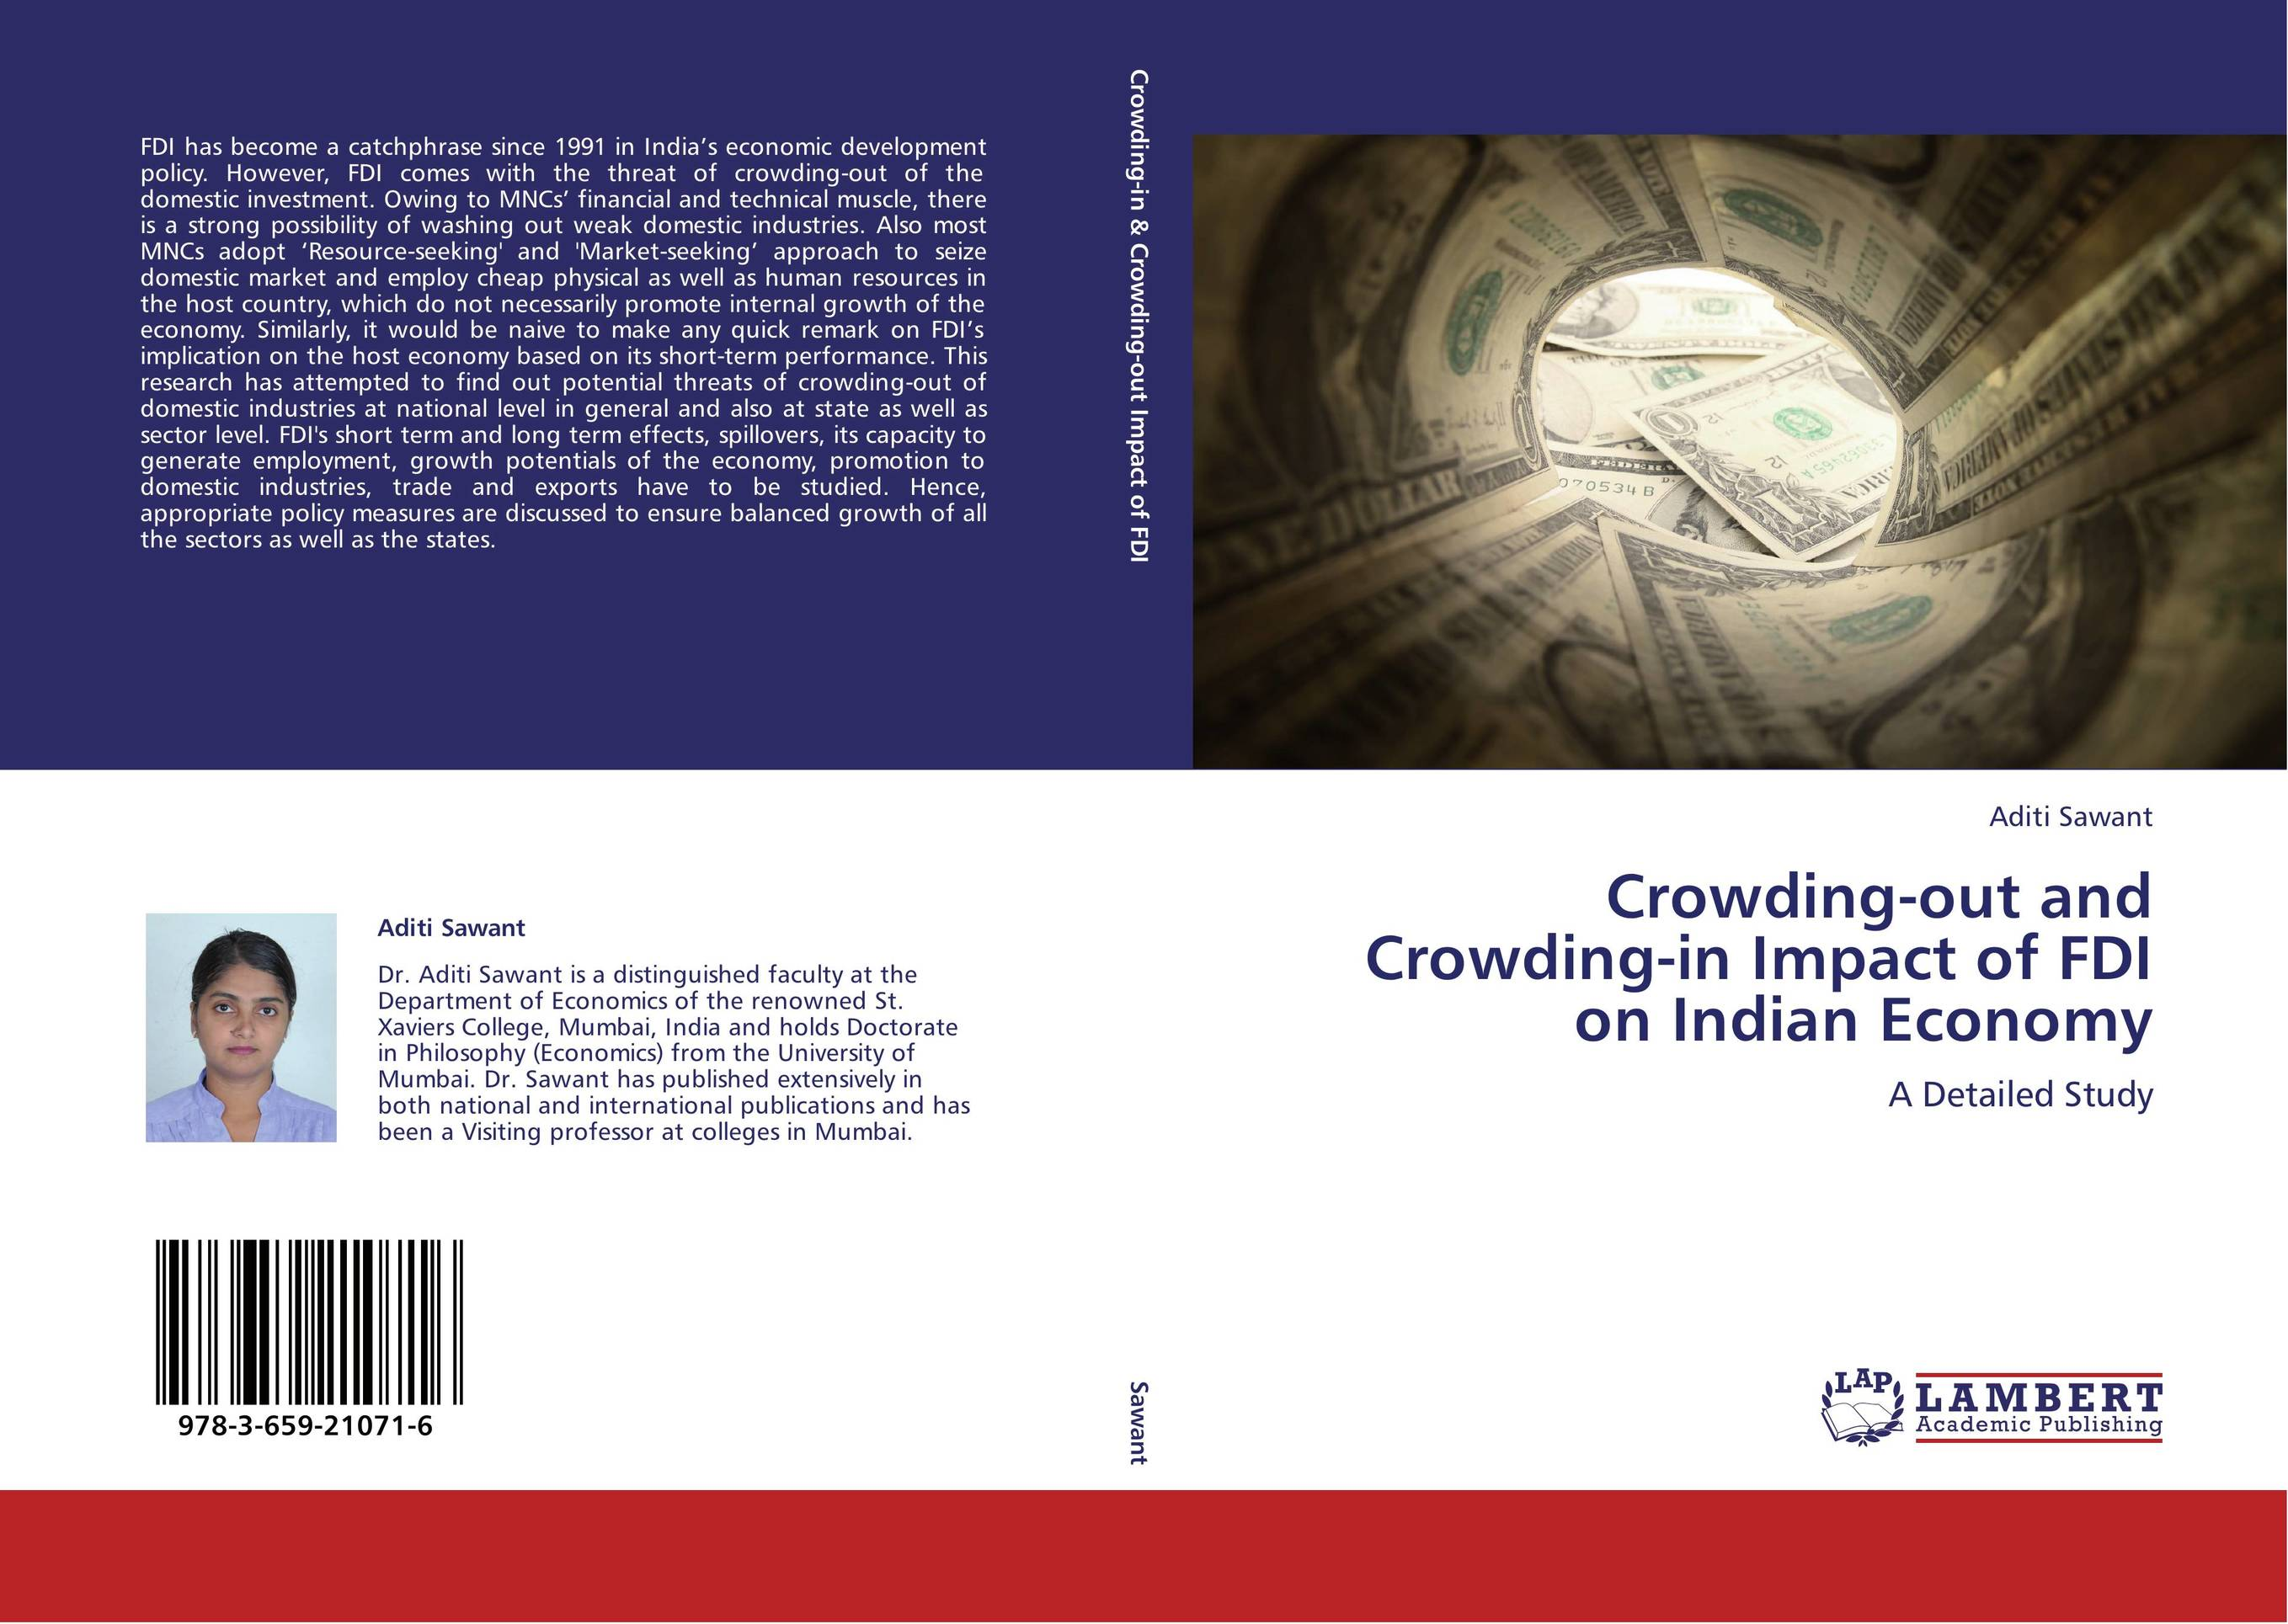 implications of the union budget of india economics essay Free essay: population-control-policies and their implications for economic growth in china bachelor's thesis supervised by the economic growth economic growth is the percentage increase in real national output in a given time period or the increase in the productive potential of the economy.